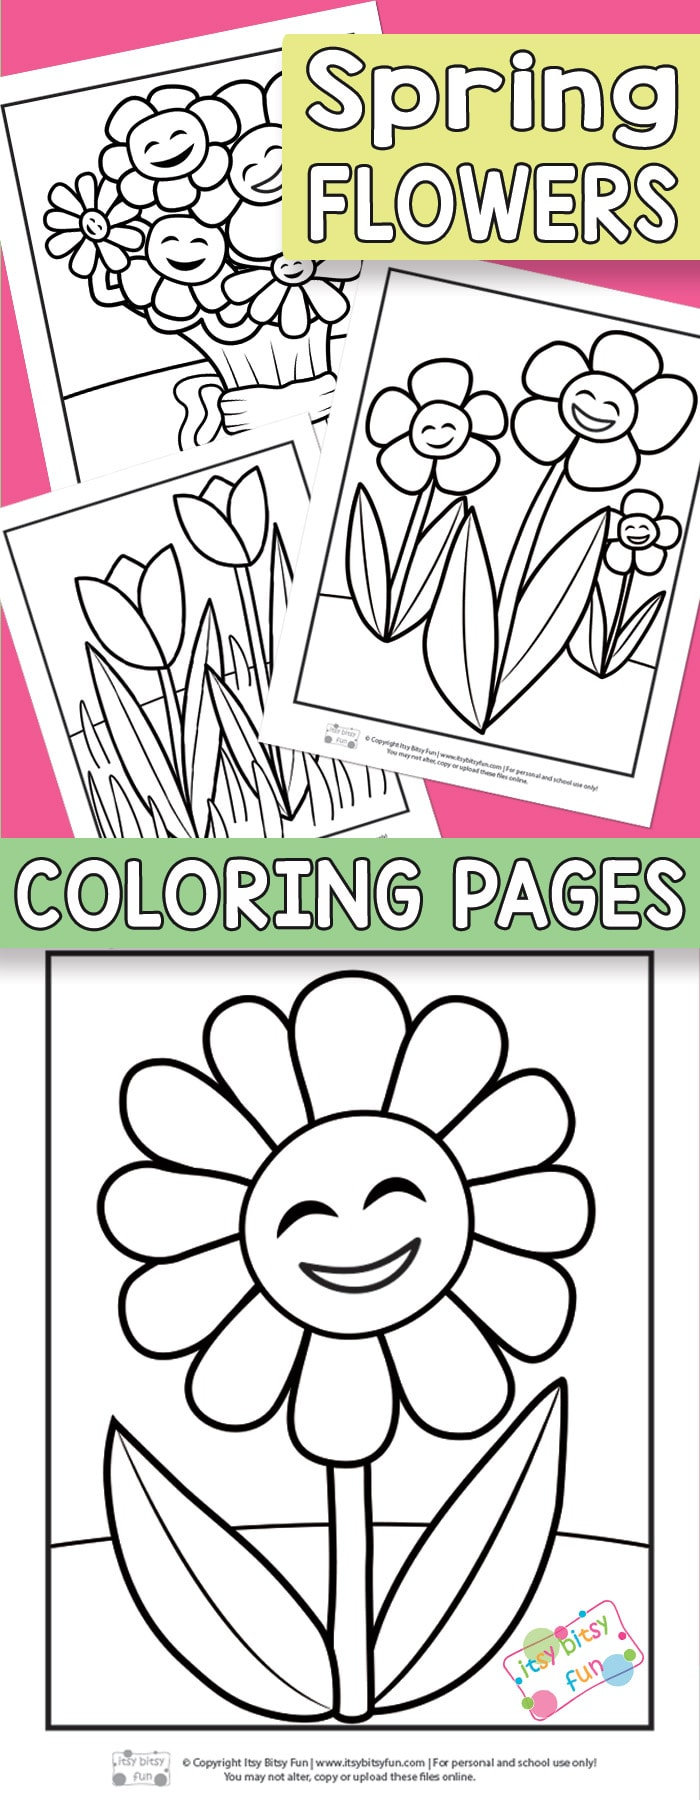 Flower Coloring Pages For Kids Itsybitsyfun Com